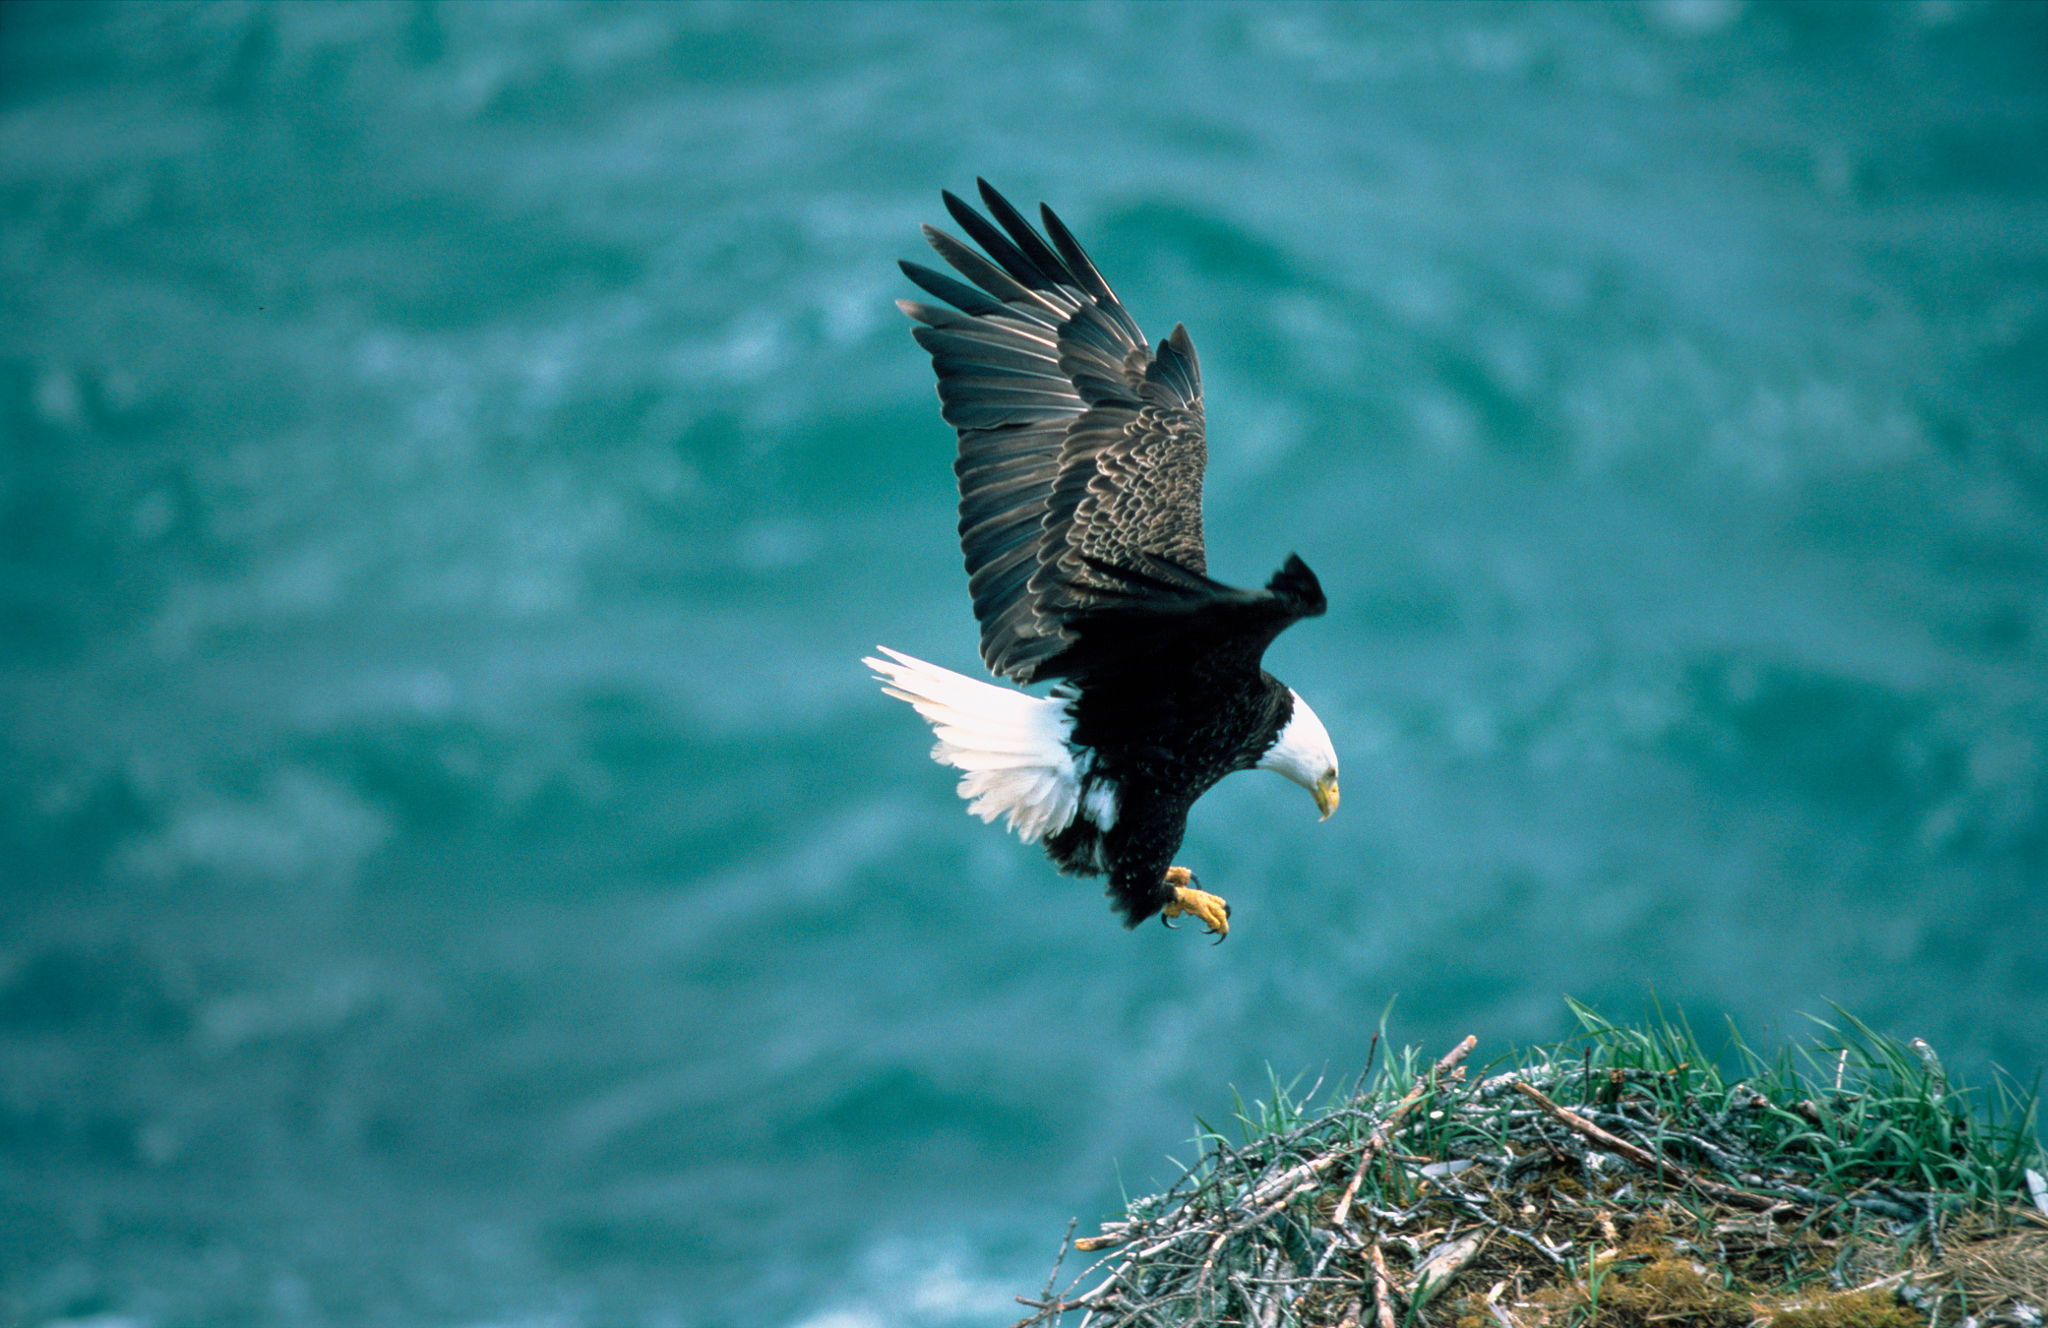 1. Bald Eagle, Haliaeetus leucocephalus, Prepares to Land on the Nest, Kodiak Island National Wildlife Refuge, State of Alaska, USA. Photo Credit: United States Fish and Wildlife Service (WV-10673-CD34), NCTC Digital Repository (http://DigitalRepository.fws.gov), National Conservation Training Center (NCTC), United States Fish and Wildlife Service (FWS, http://www.fws.gov), United States Department of the Interior (http://www.doi.gov), Government of the United States of America (USA).